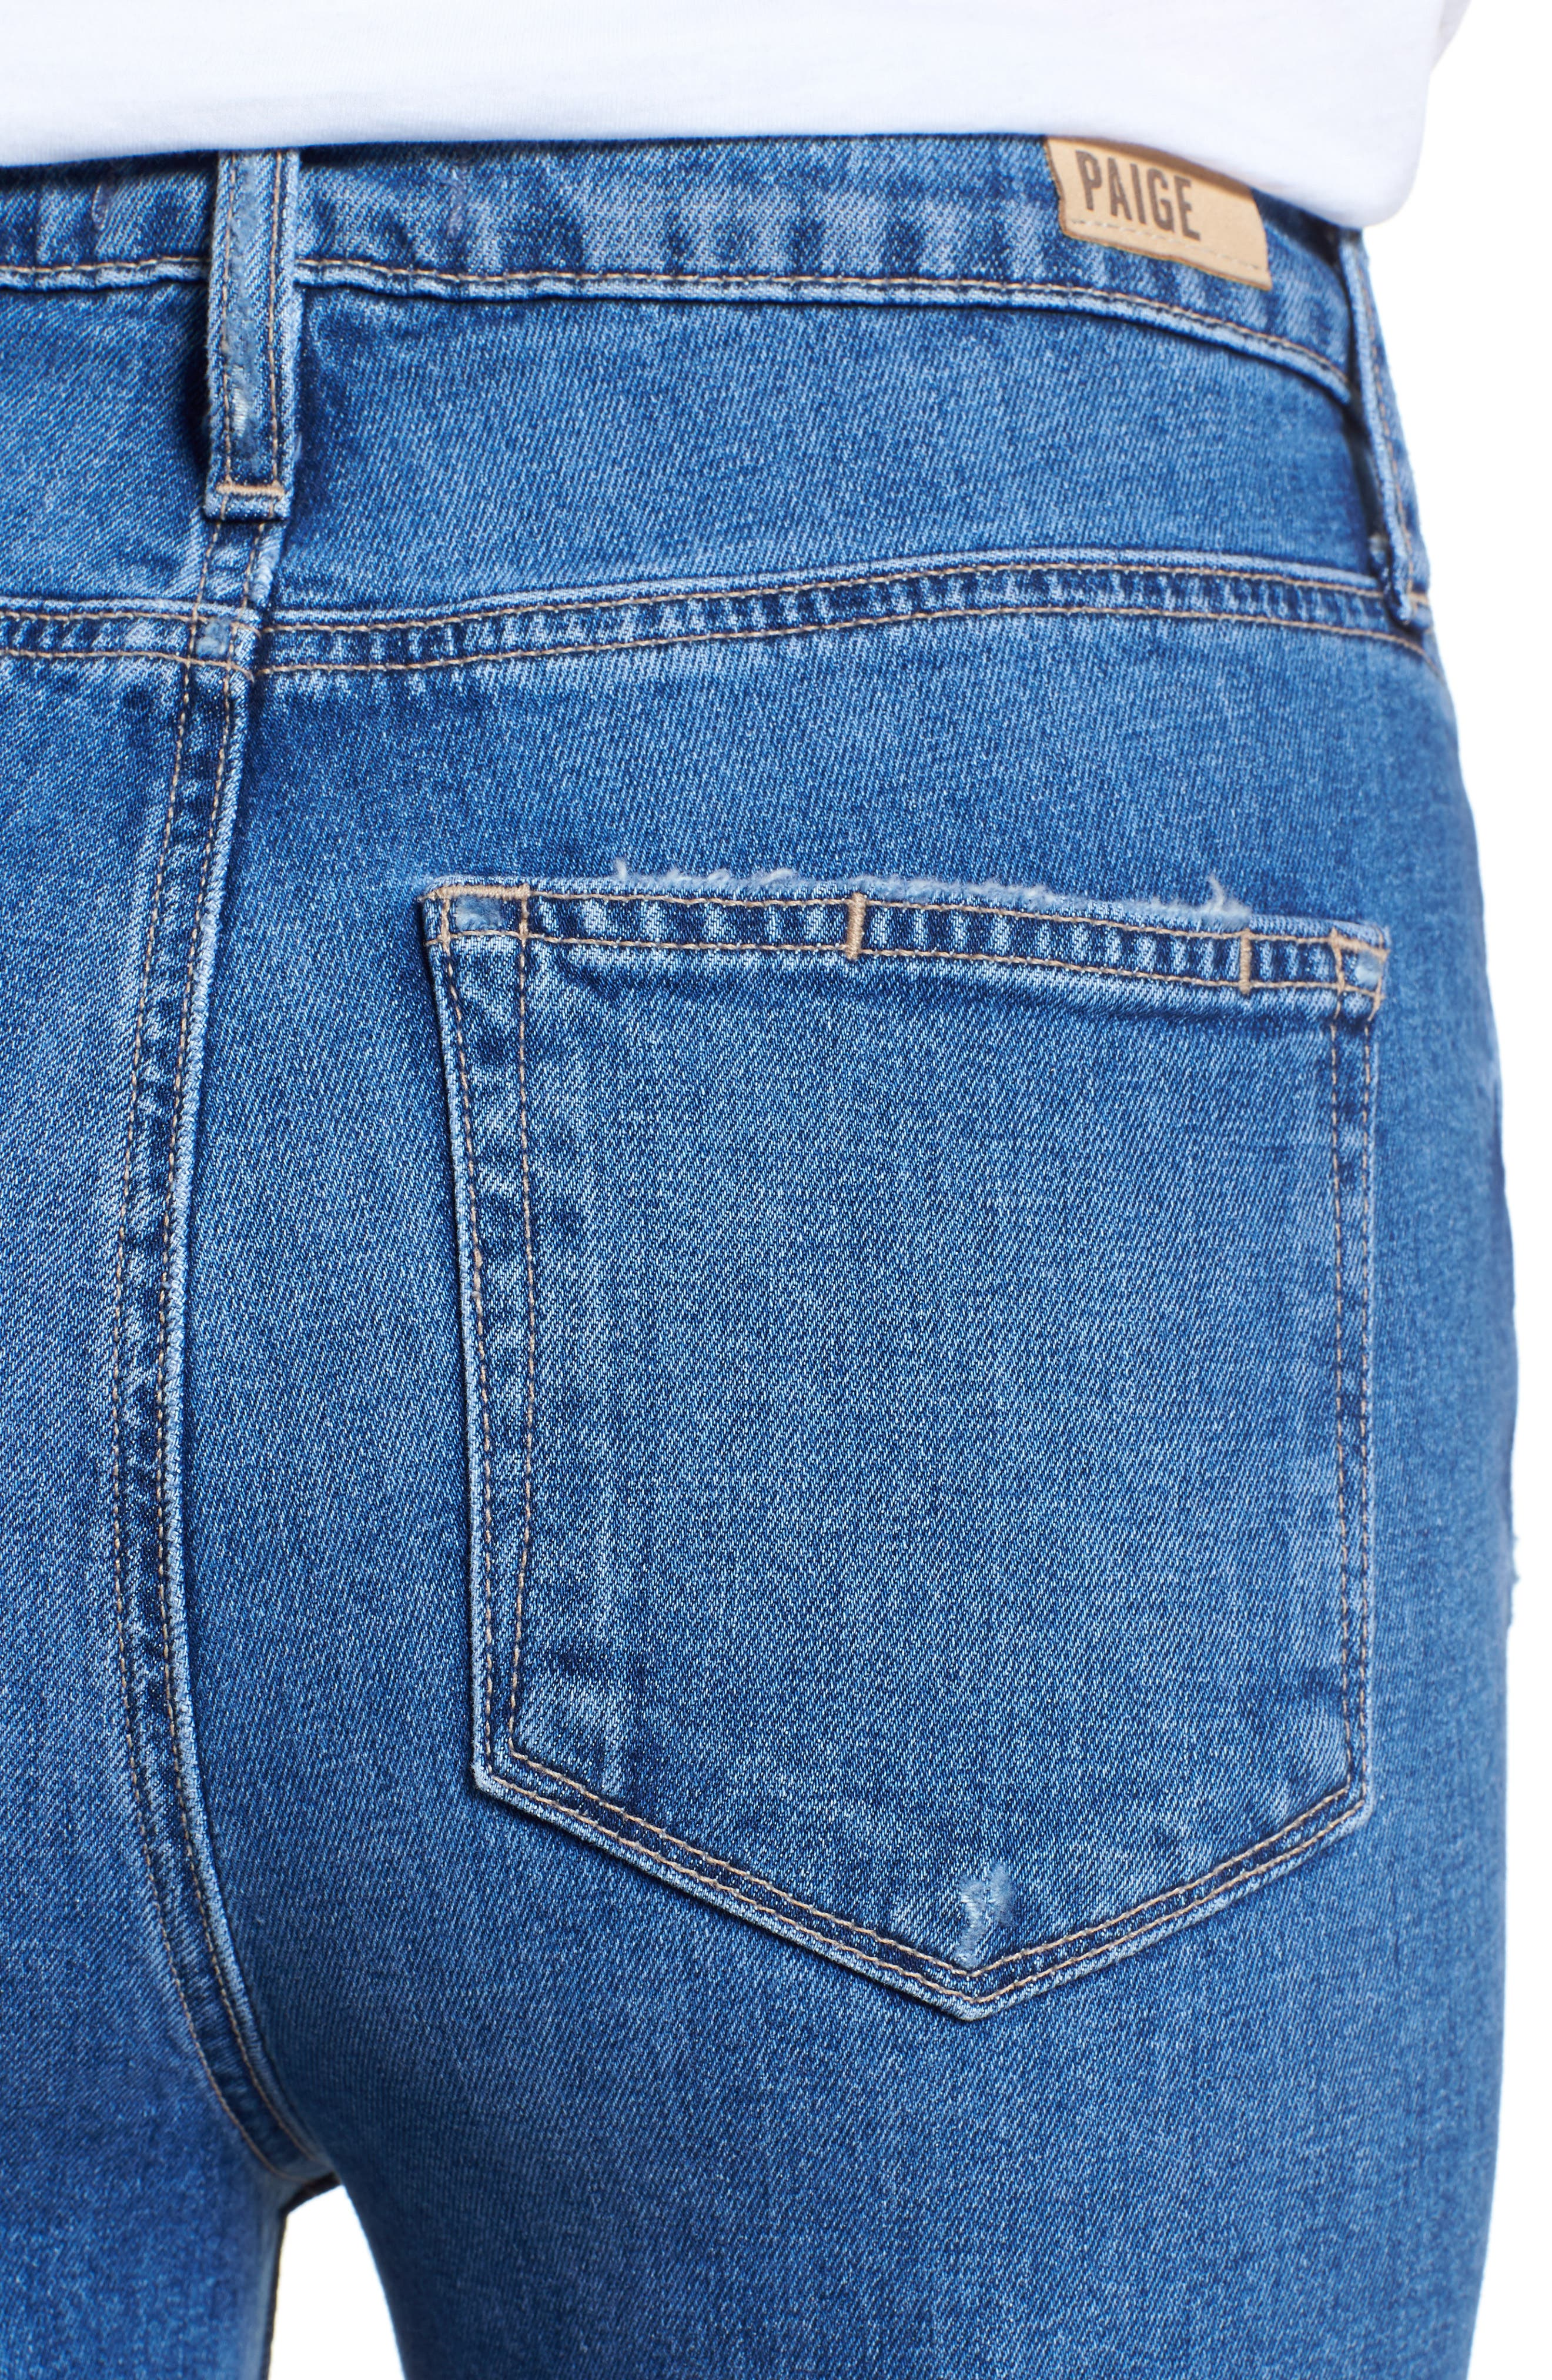 PAIGE, Vintage Hoxton High Waist Slim Raw Hem Jeans, Alternate thumbnail 4, color, BIRDIE